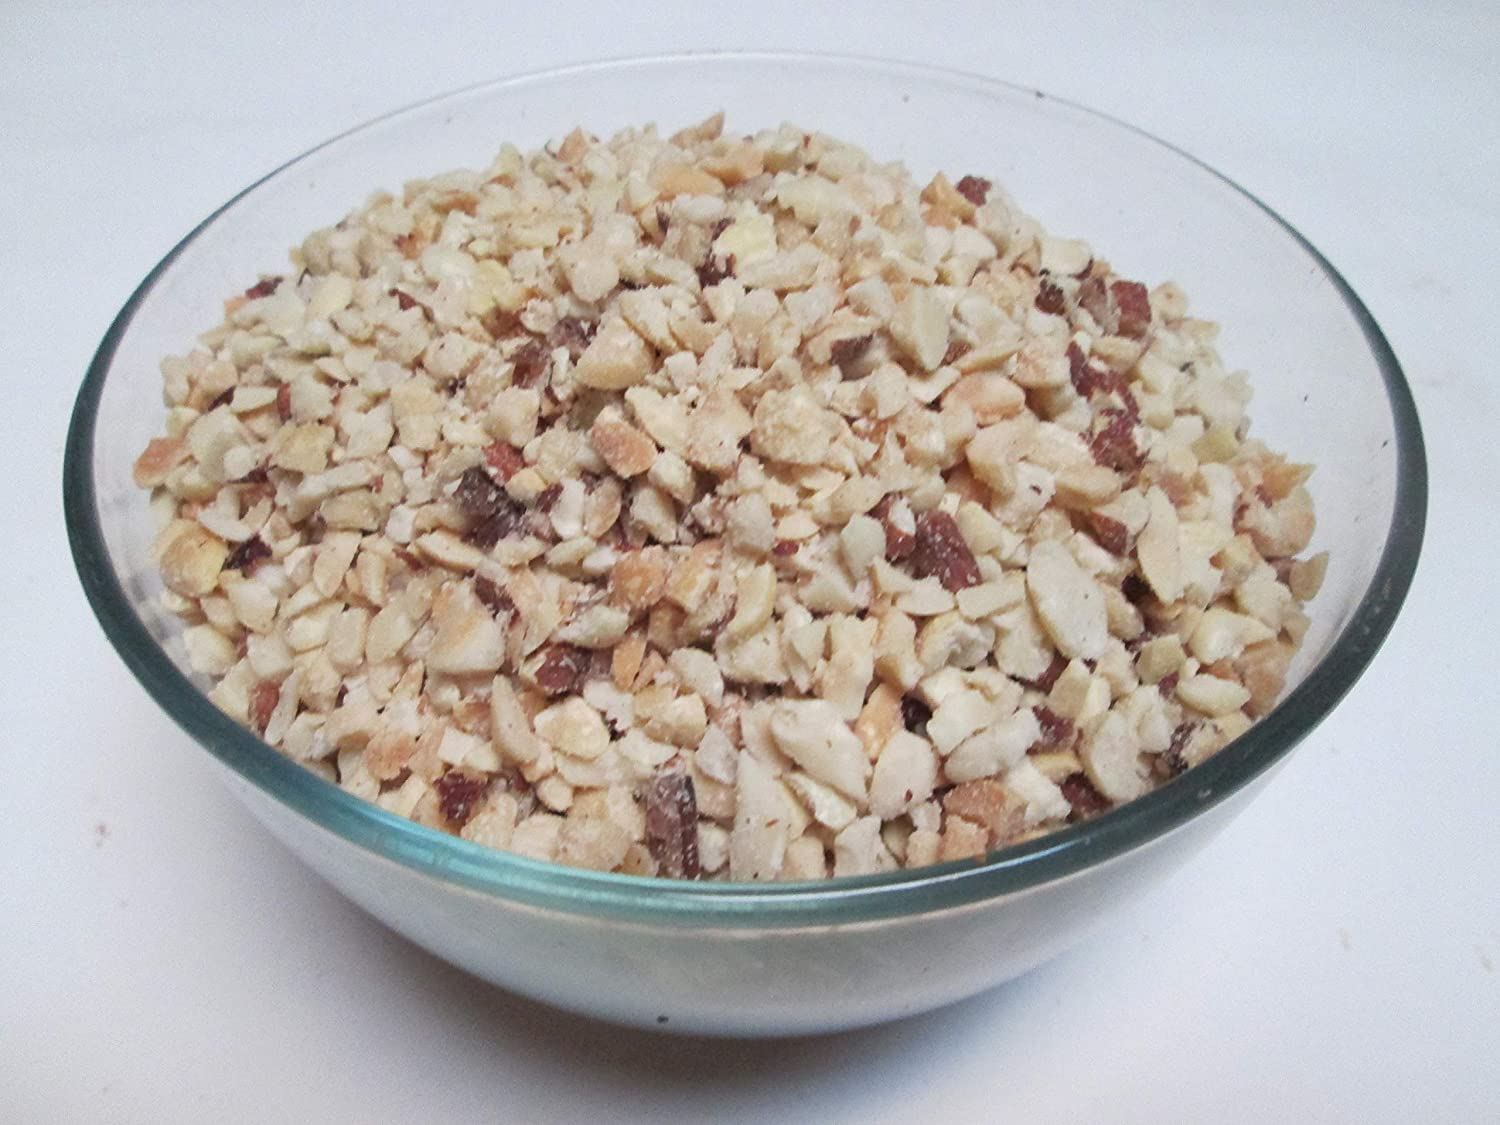 Nut Topping- Blend of 7 Chopped Nuts, 2 Lb Bag, Roasted Unsalted -Candymax